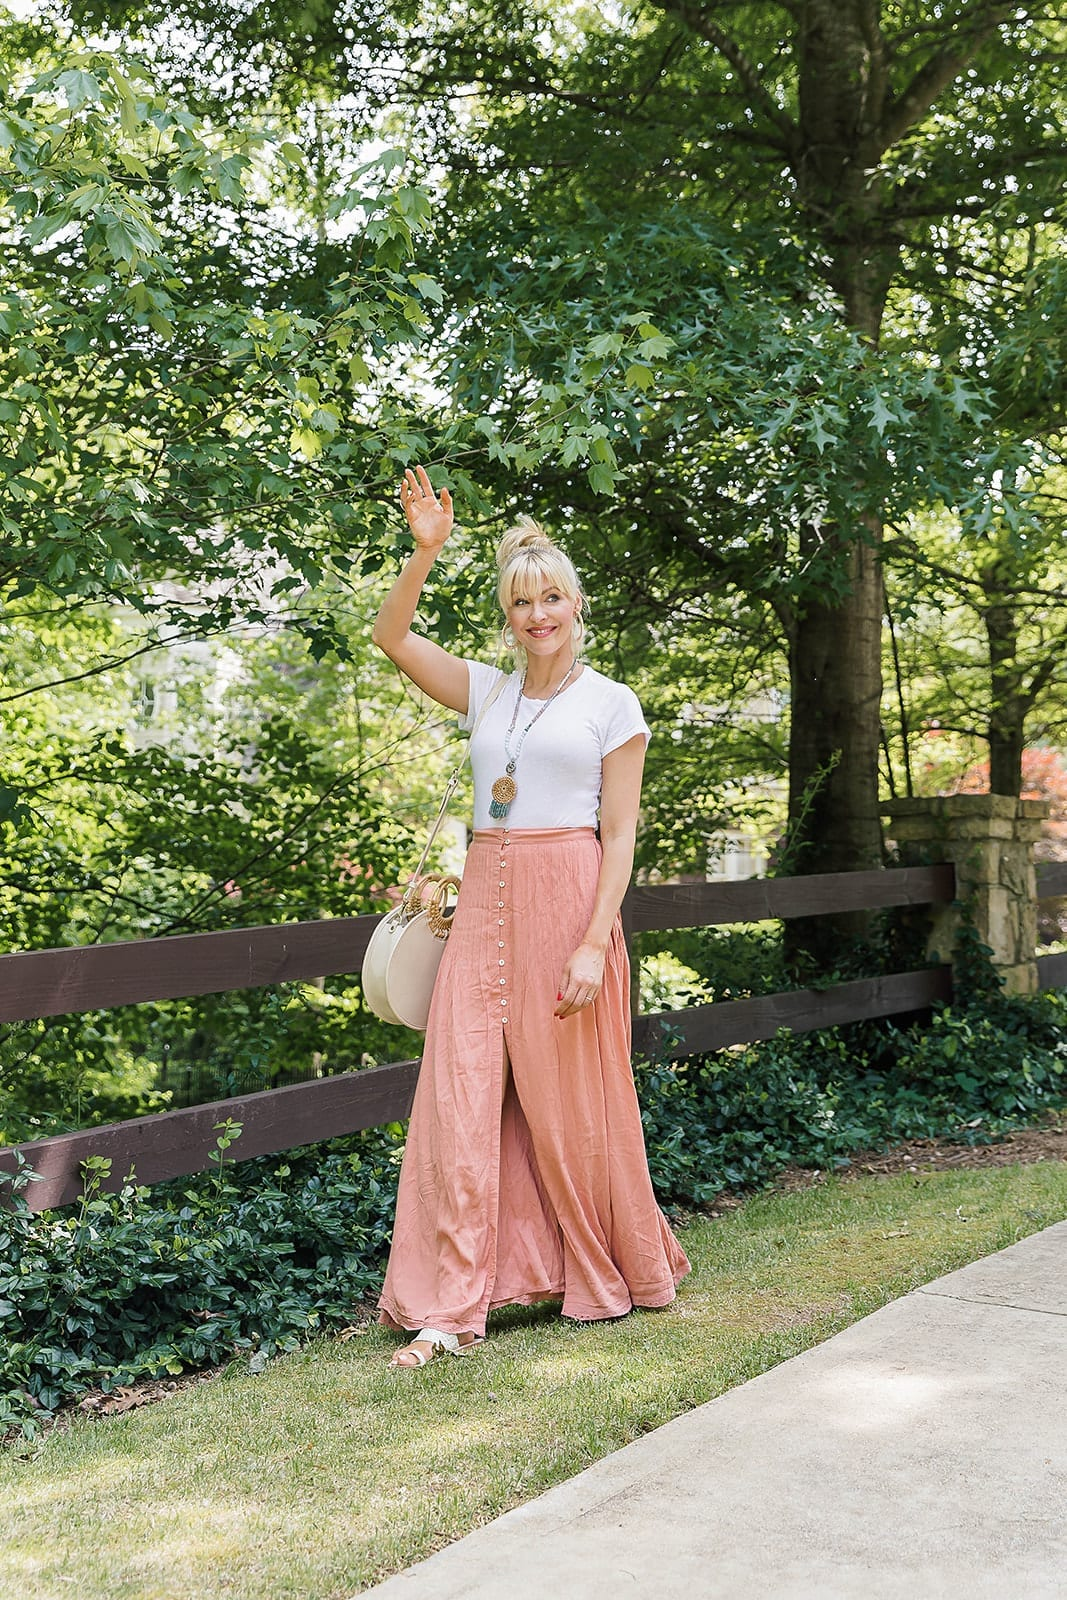 Atlanta lifestyle blogger Blue Gray Gal in summer skirt outfit.